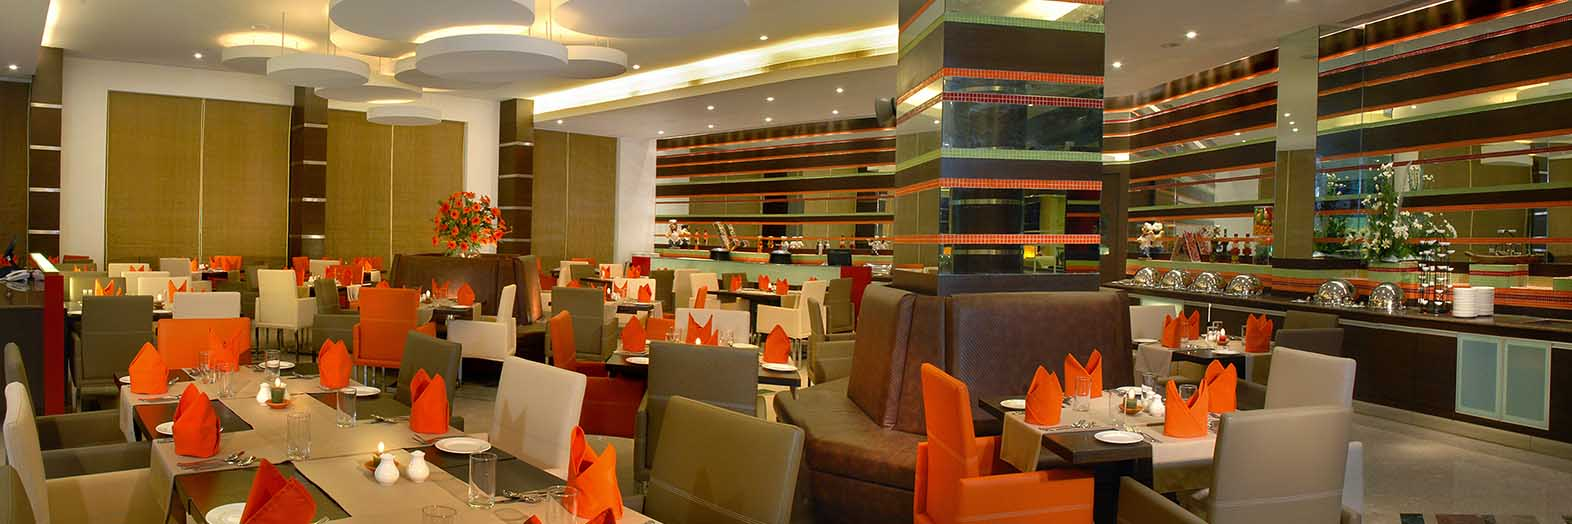 Fortune Select Trinity – Bengaluru Hotels Dining